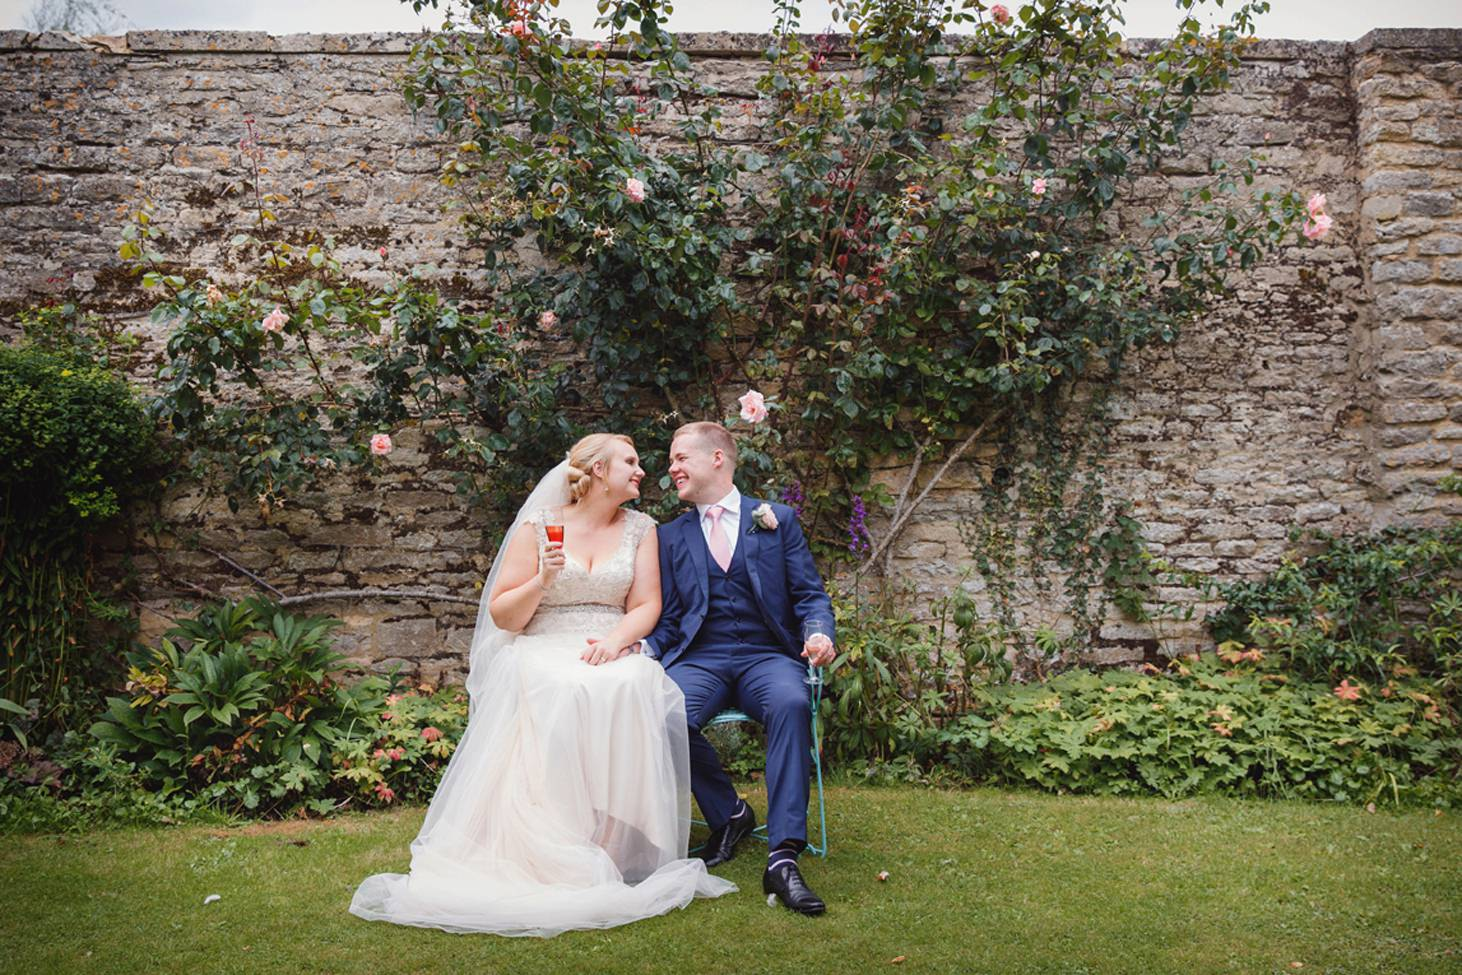 oxfordshire wedding photography sarah ann wright 079